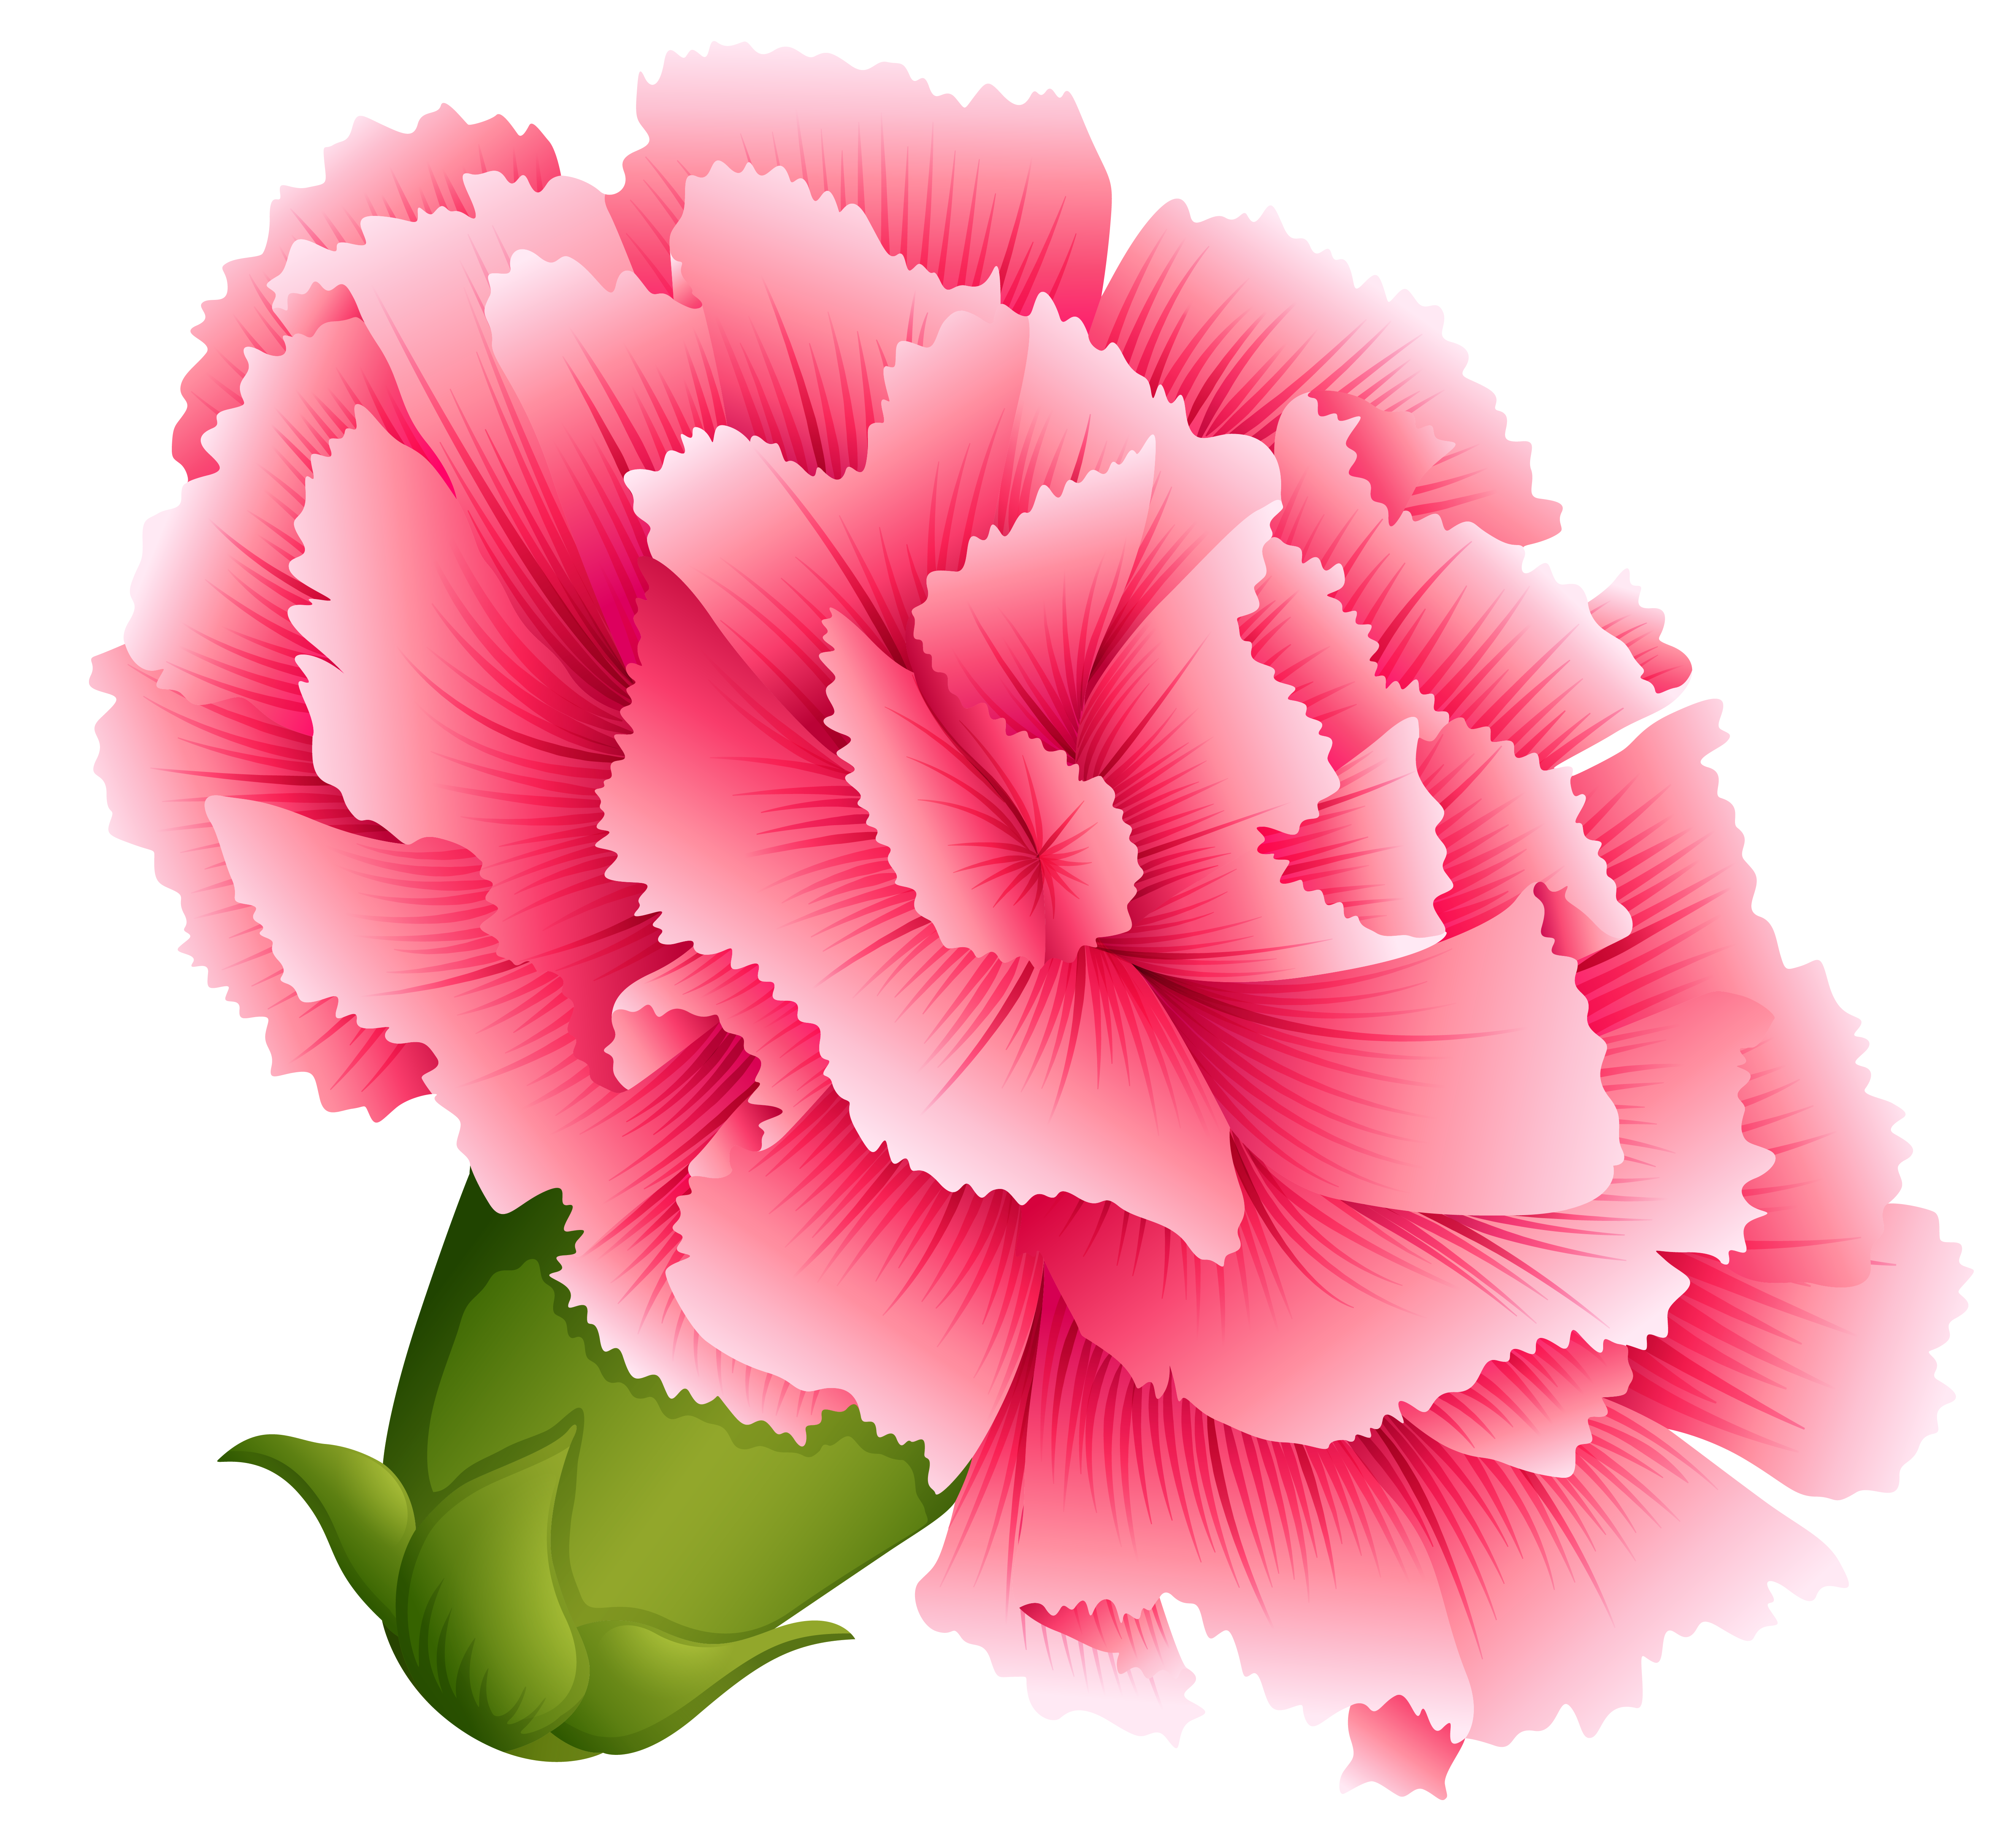 Carnation flower clipart picture library library Pink Carnation PNG Clipart Image   Gallery Yopriceville - High ... picture library library